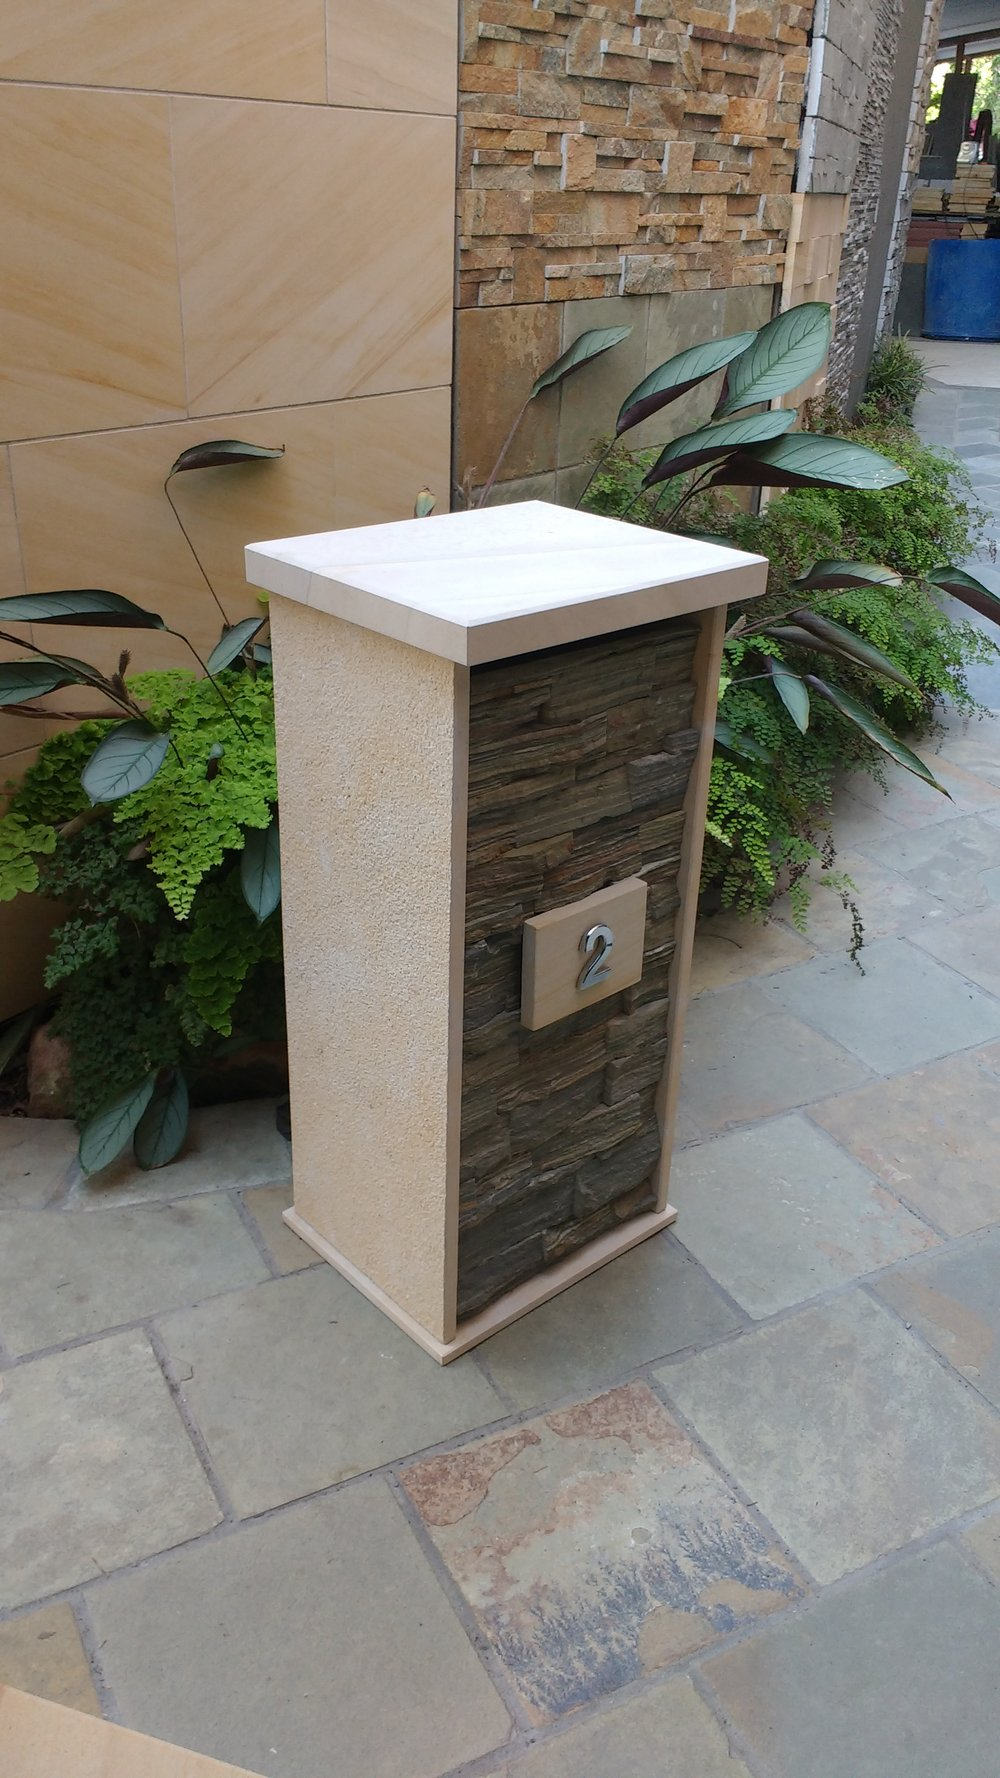 20a. sandstone limestone combination with stacker stone front 860mm high 400mm wide and 350mm deep. Cost $610